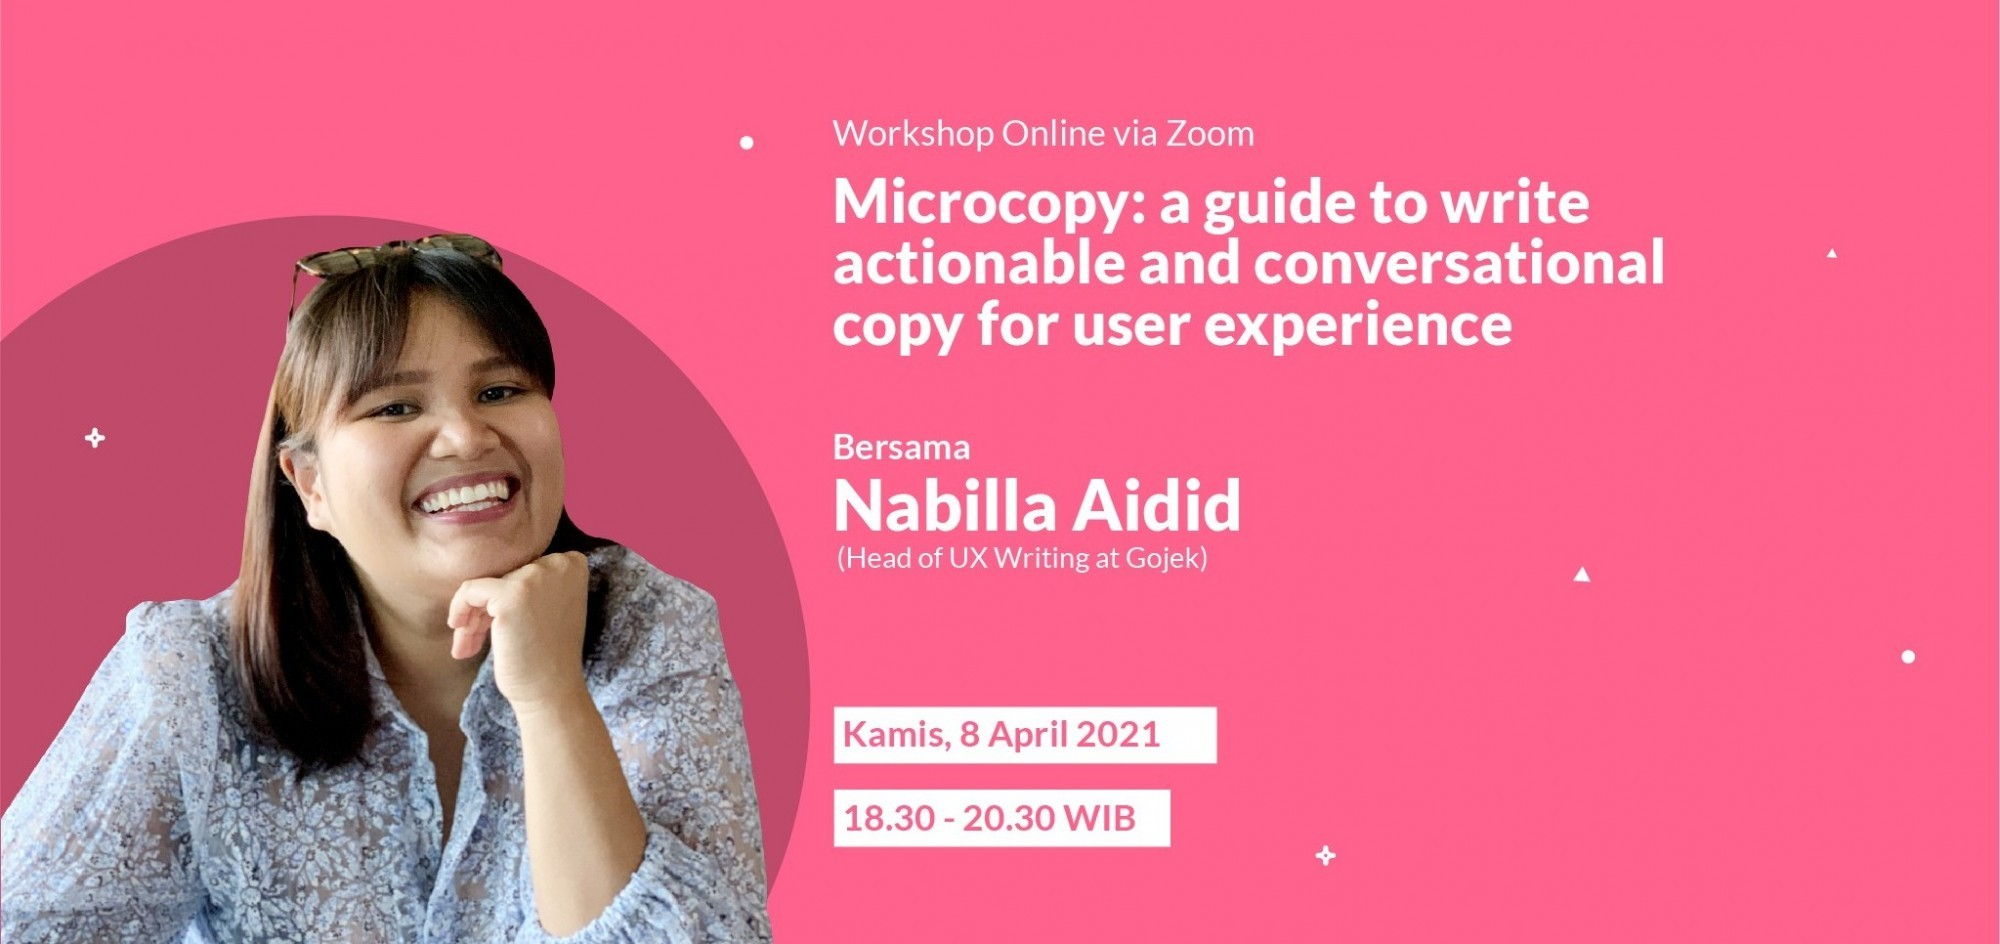 Microcopy: A guide to write actionable and conversational copy for user experience